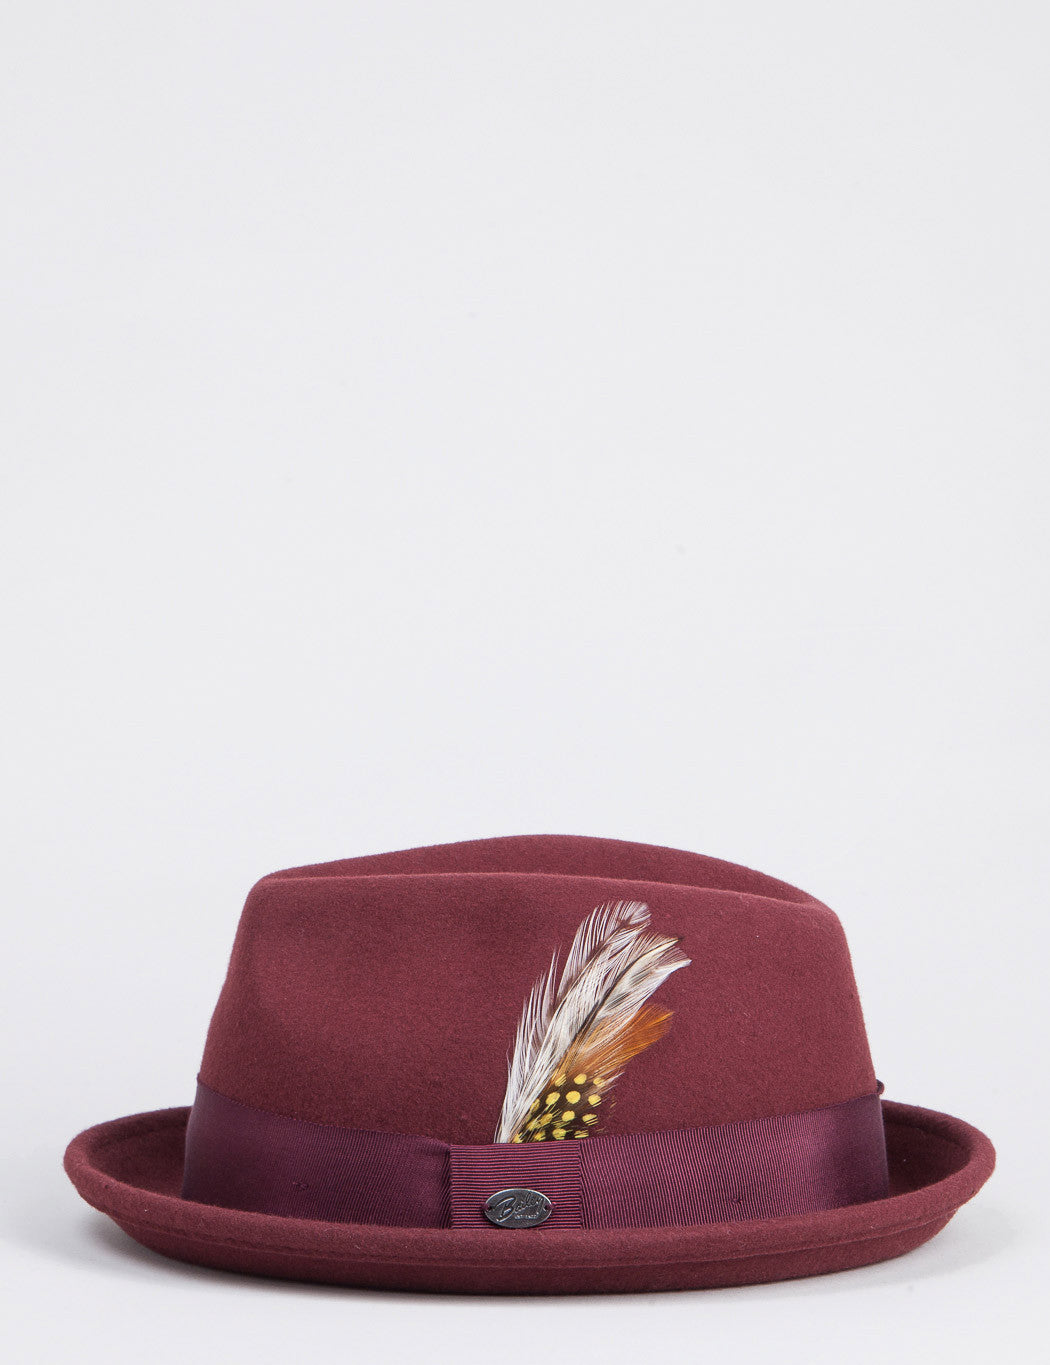 Bailey Cloyd Trilby Hat - Oxblood